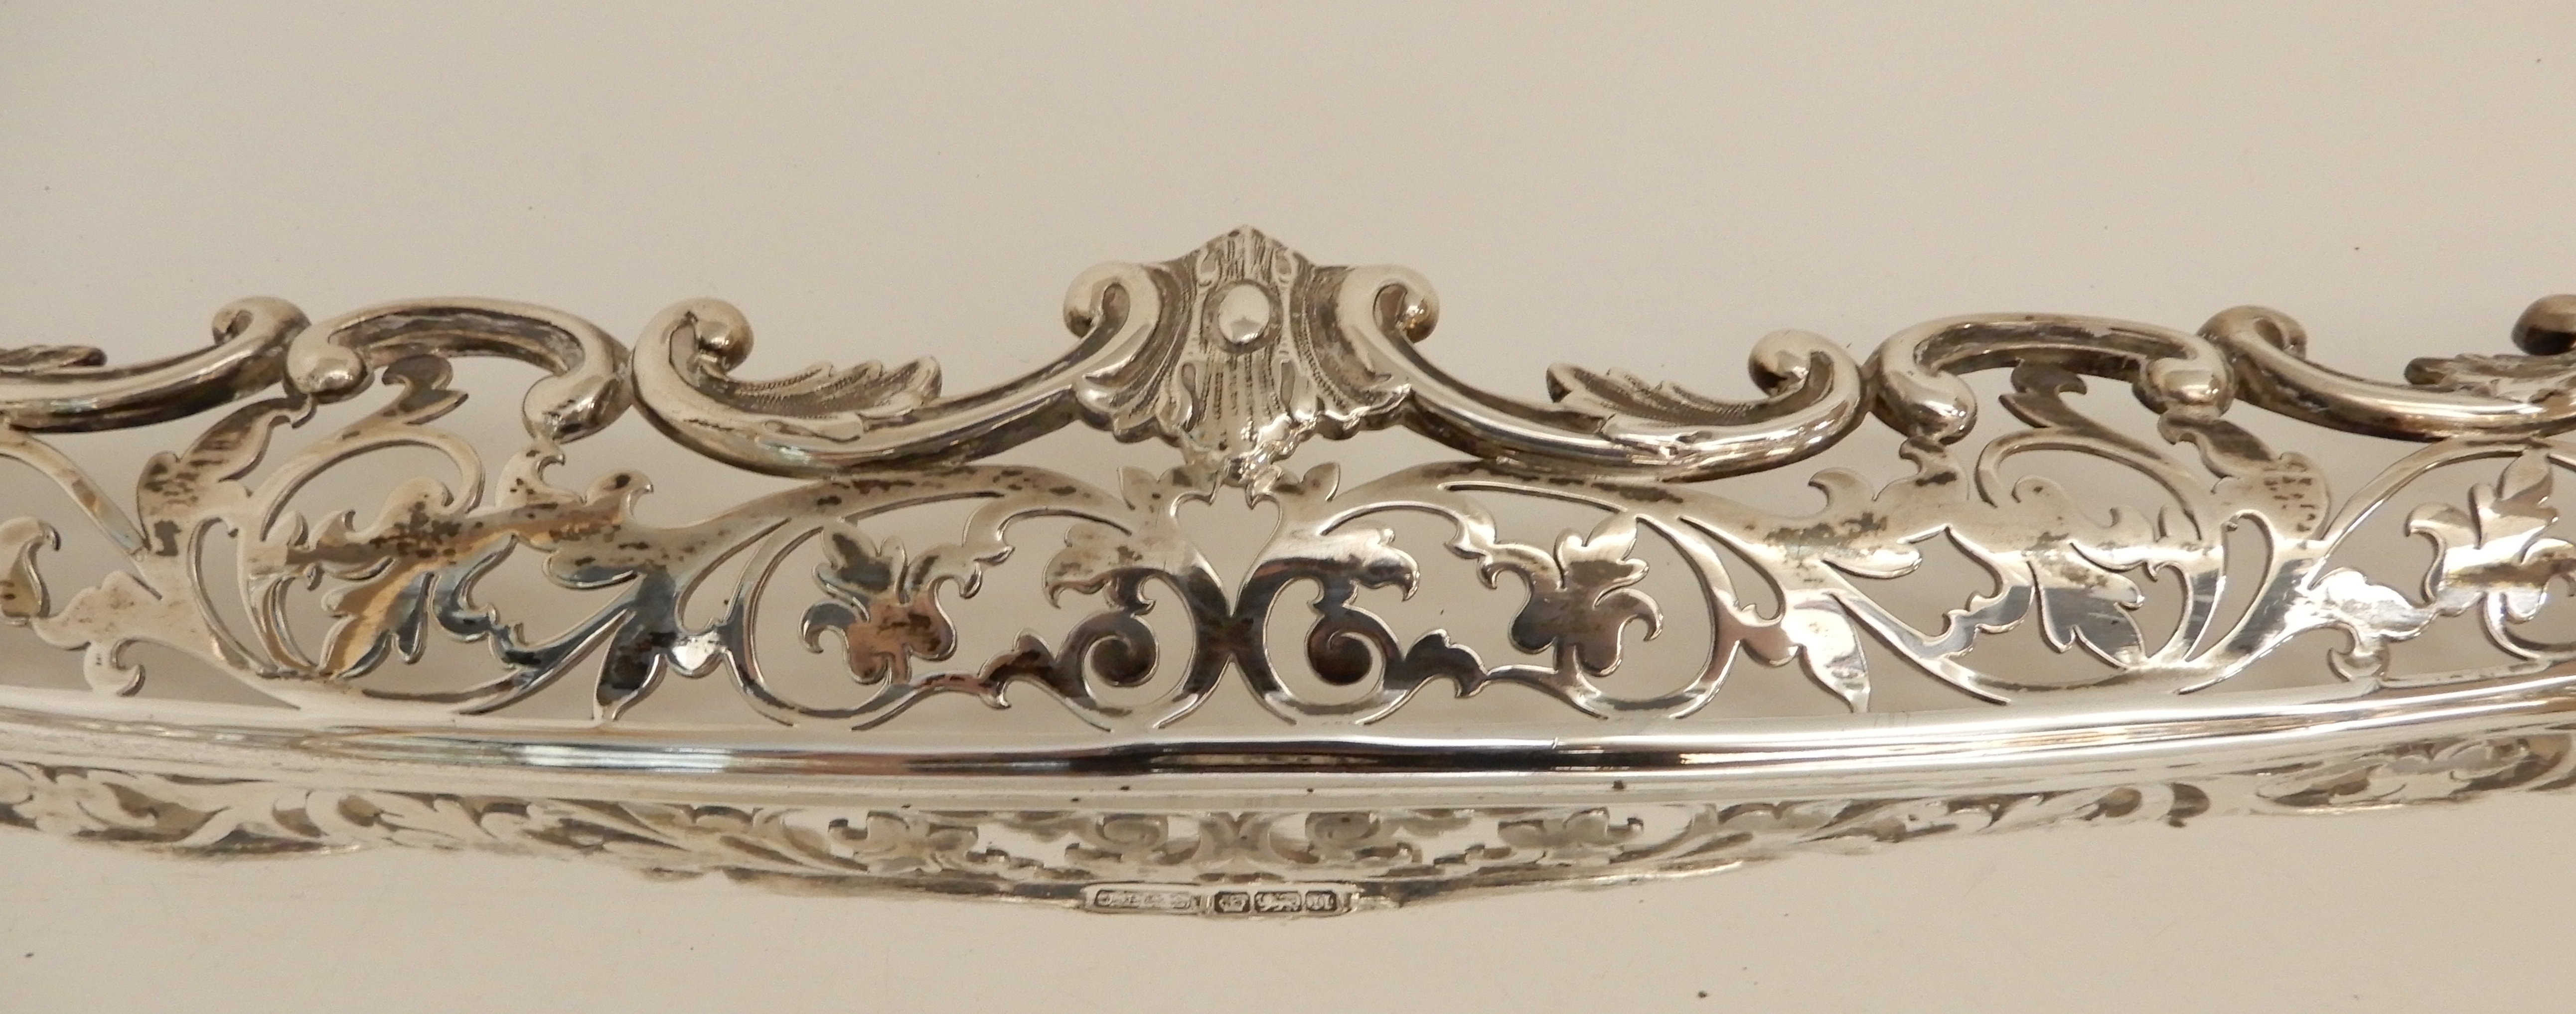 Lot 163 - A LARGE SILVER SERVING TRAY by James Ballantyne & Son, Sheffield 1905, of rectangular form with